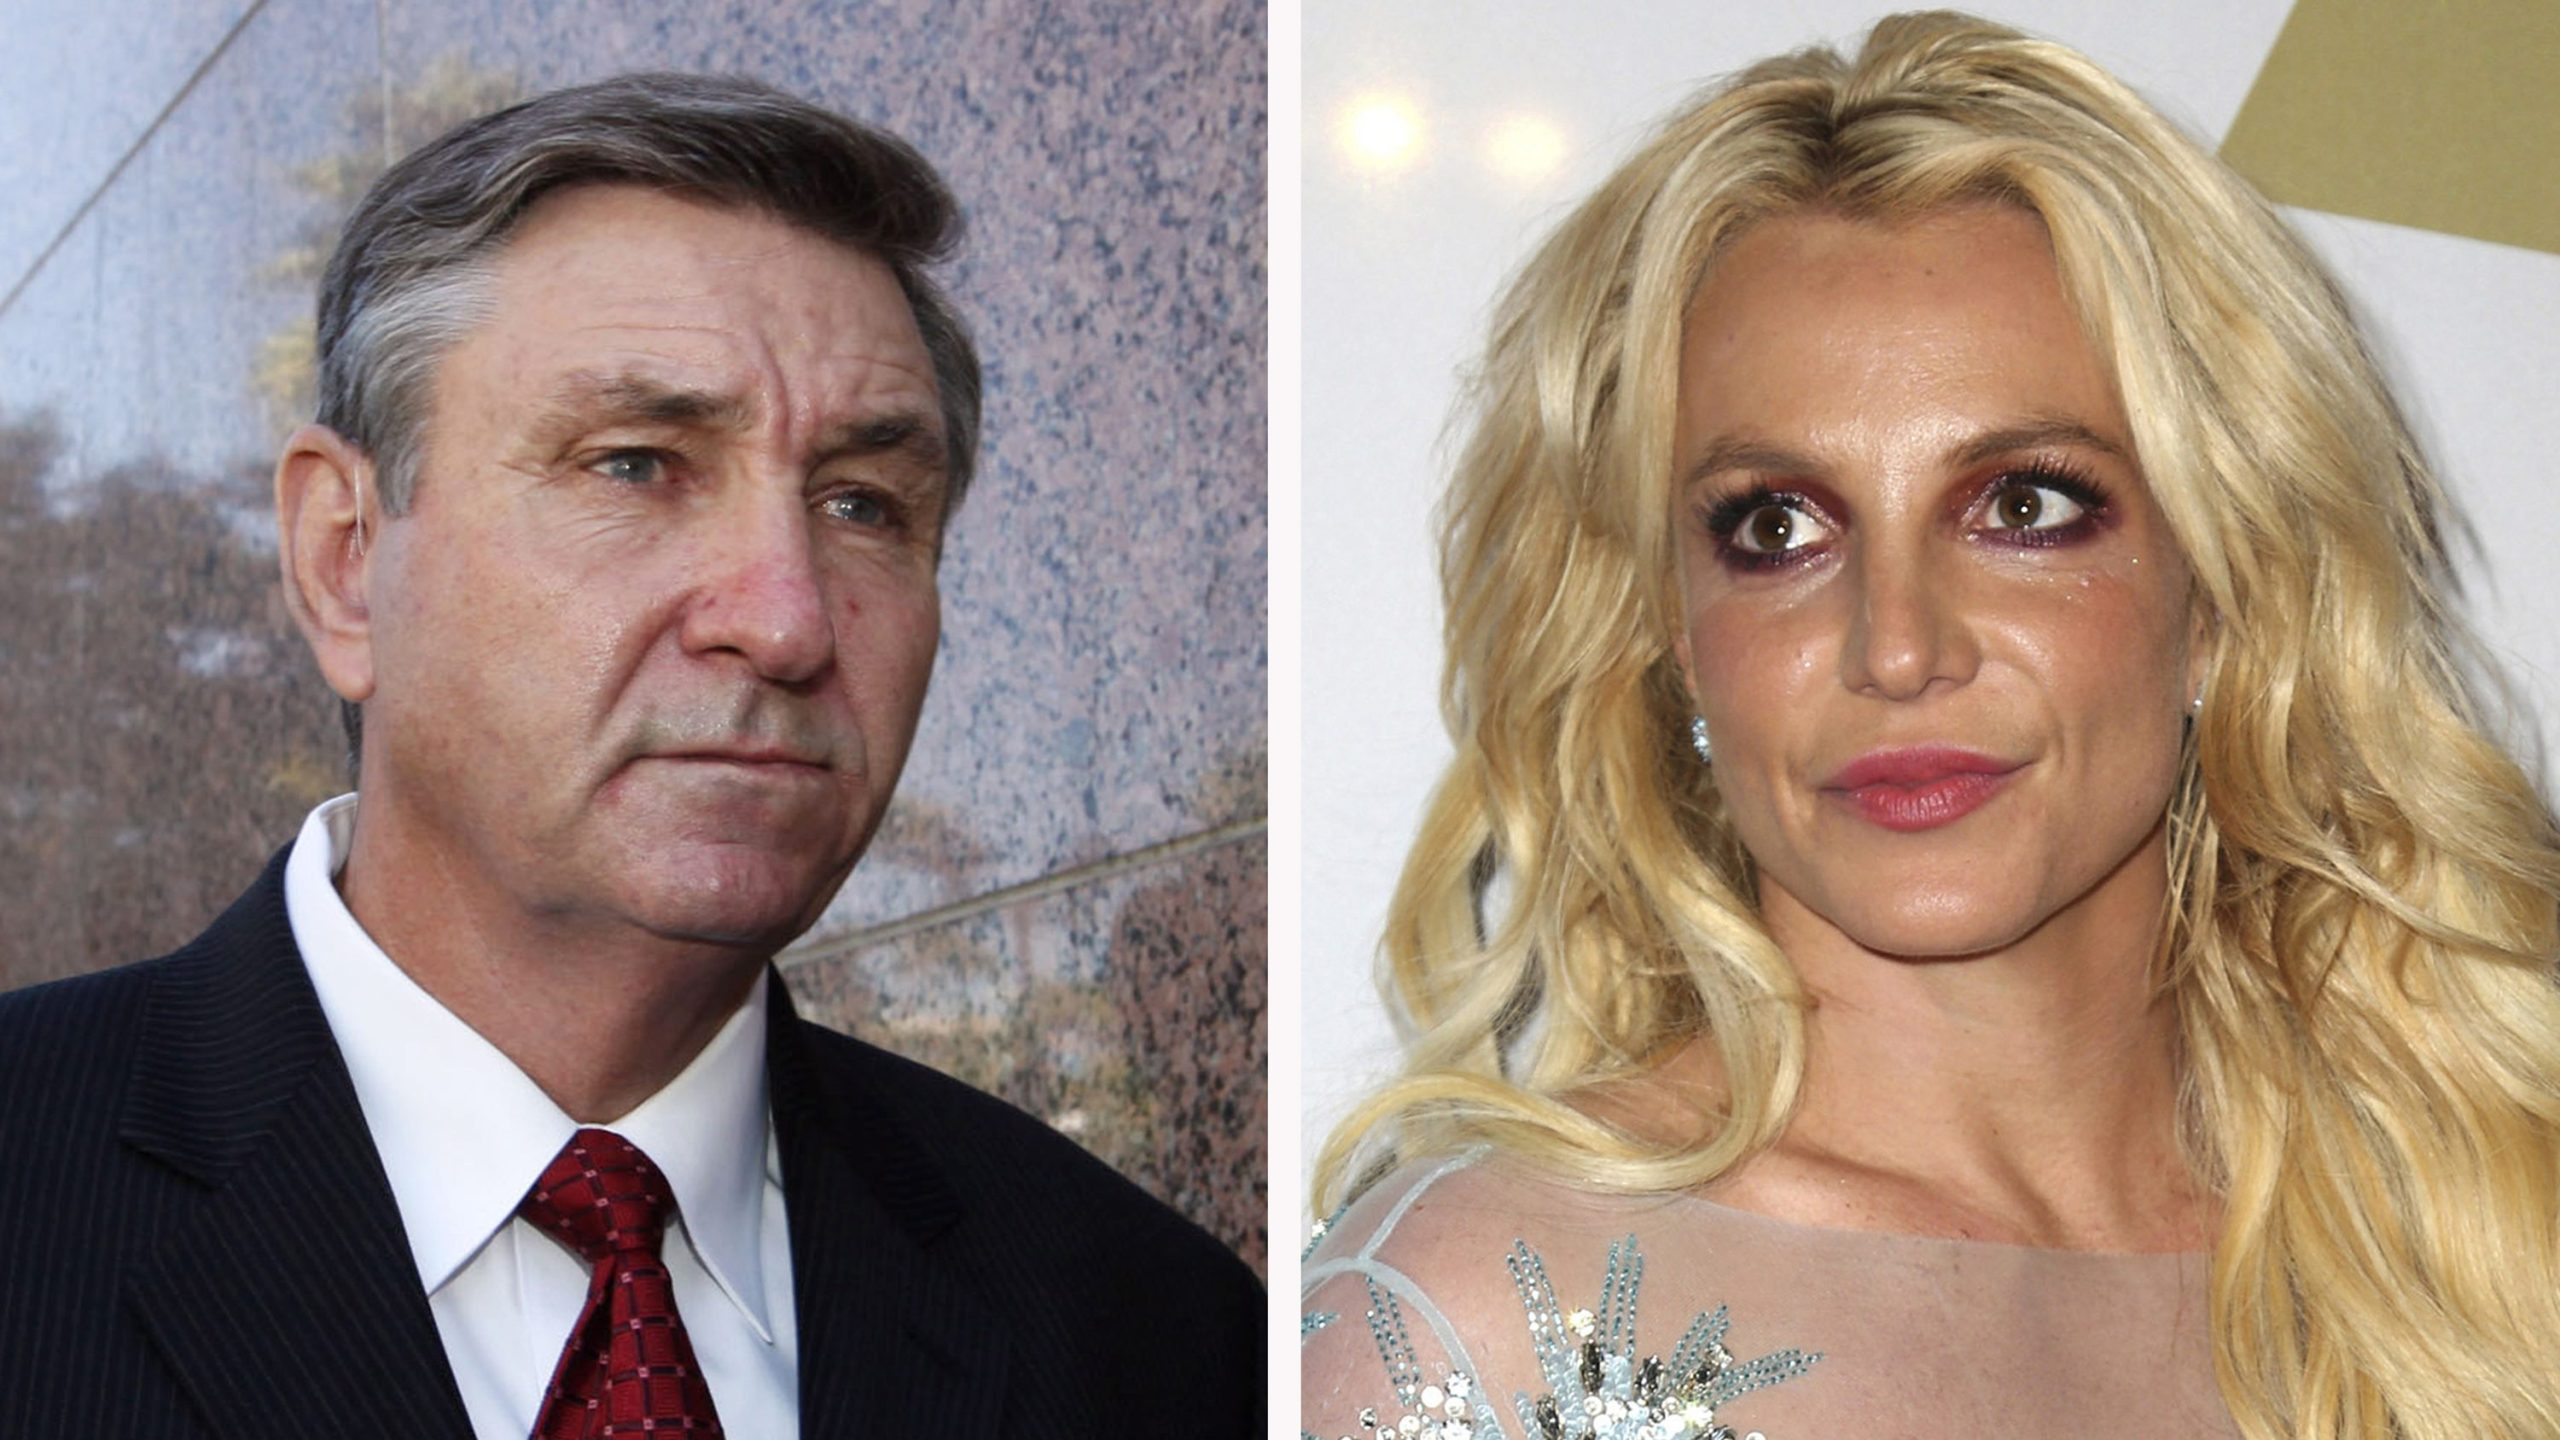 This combination photo shows Jamie Spears, left, father of Britney Spears, as he leaves the Stanley Mosk Courthouse on Oct. 24, 2012, in Los Angeles, and Britney Spears at the Clive Davis and The Recording Academy Pre-Grammy Gala on Feb. 11, 2017, in Beverly Hills. (Associated Press)